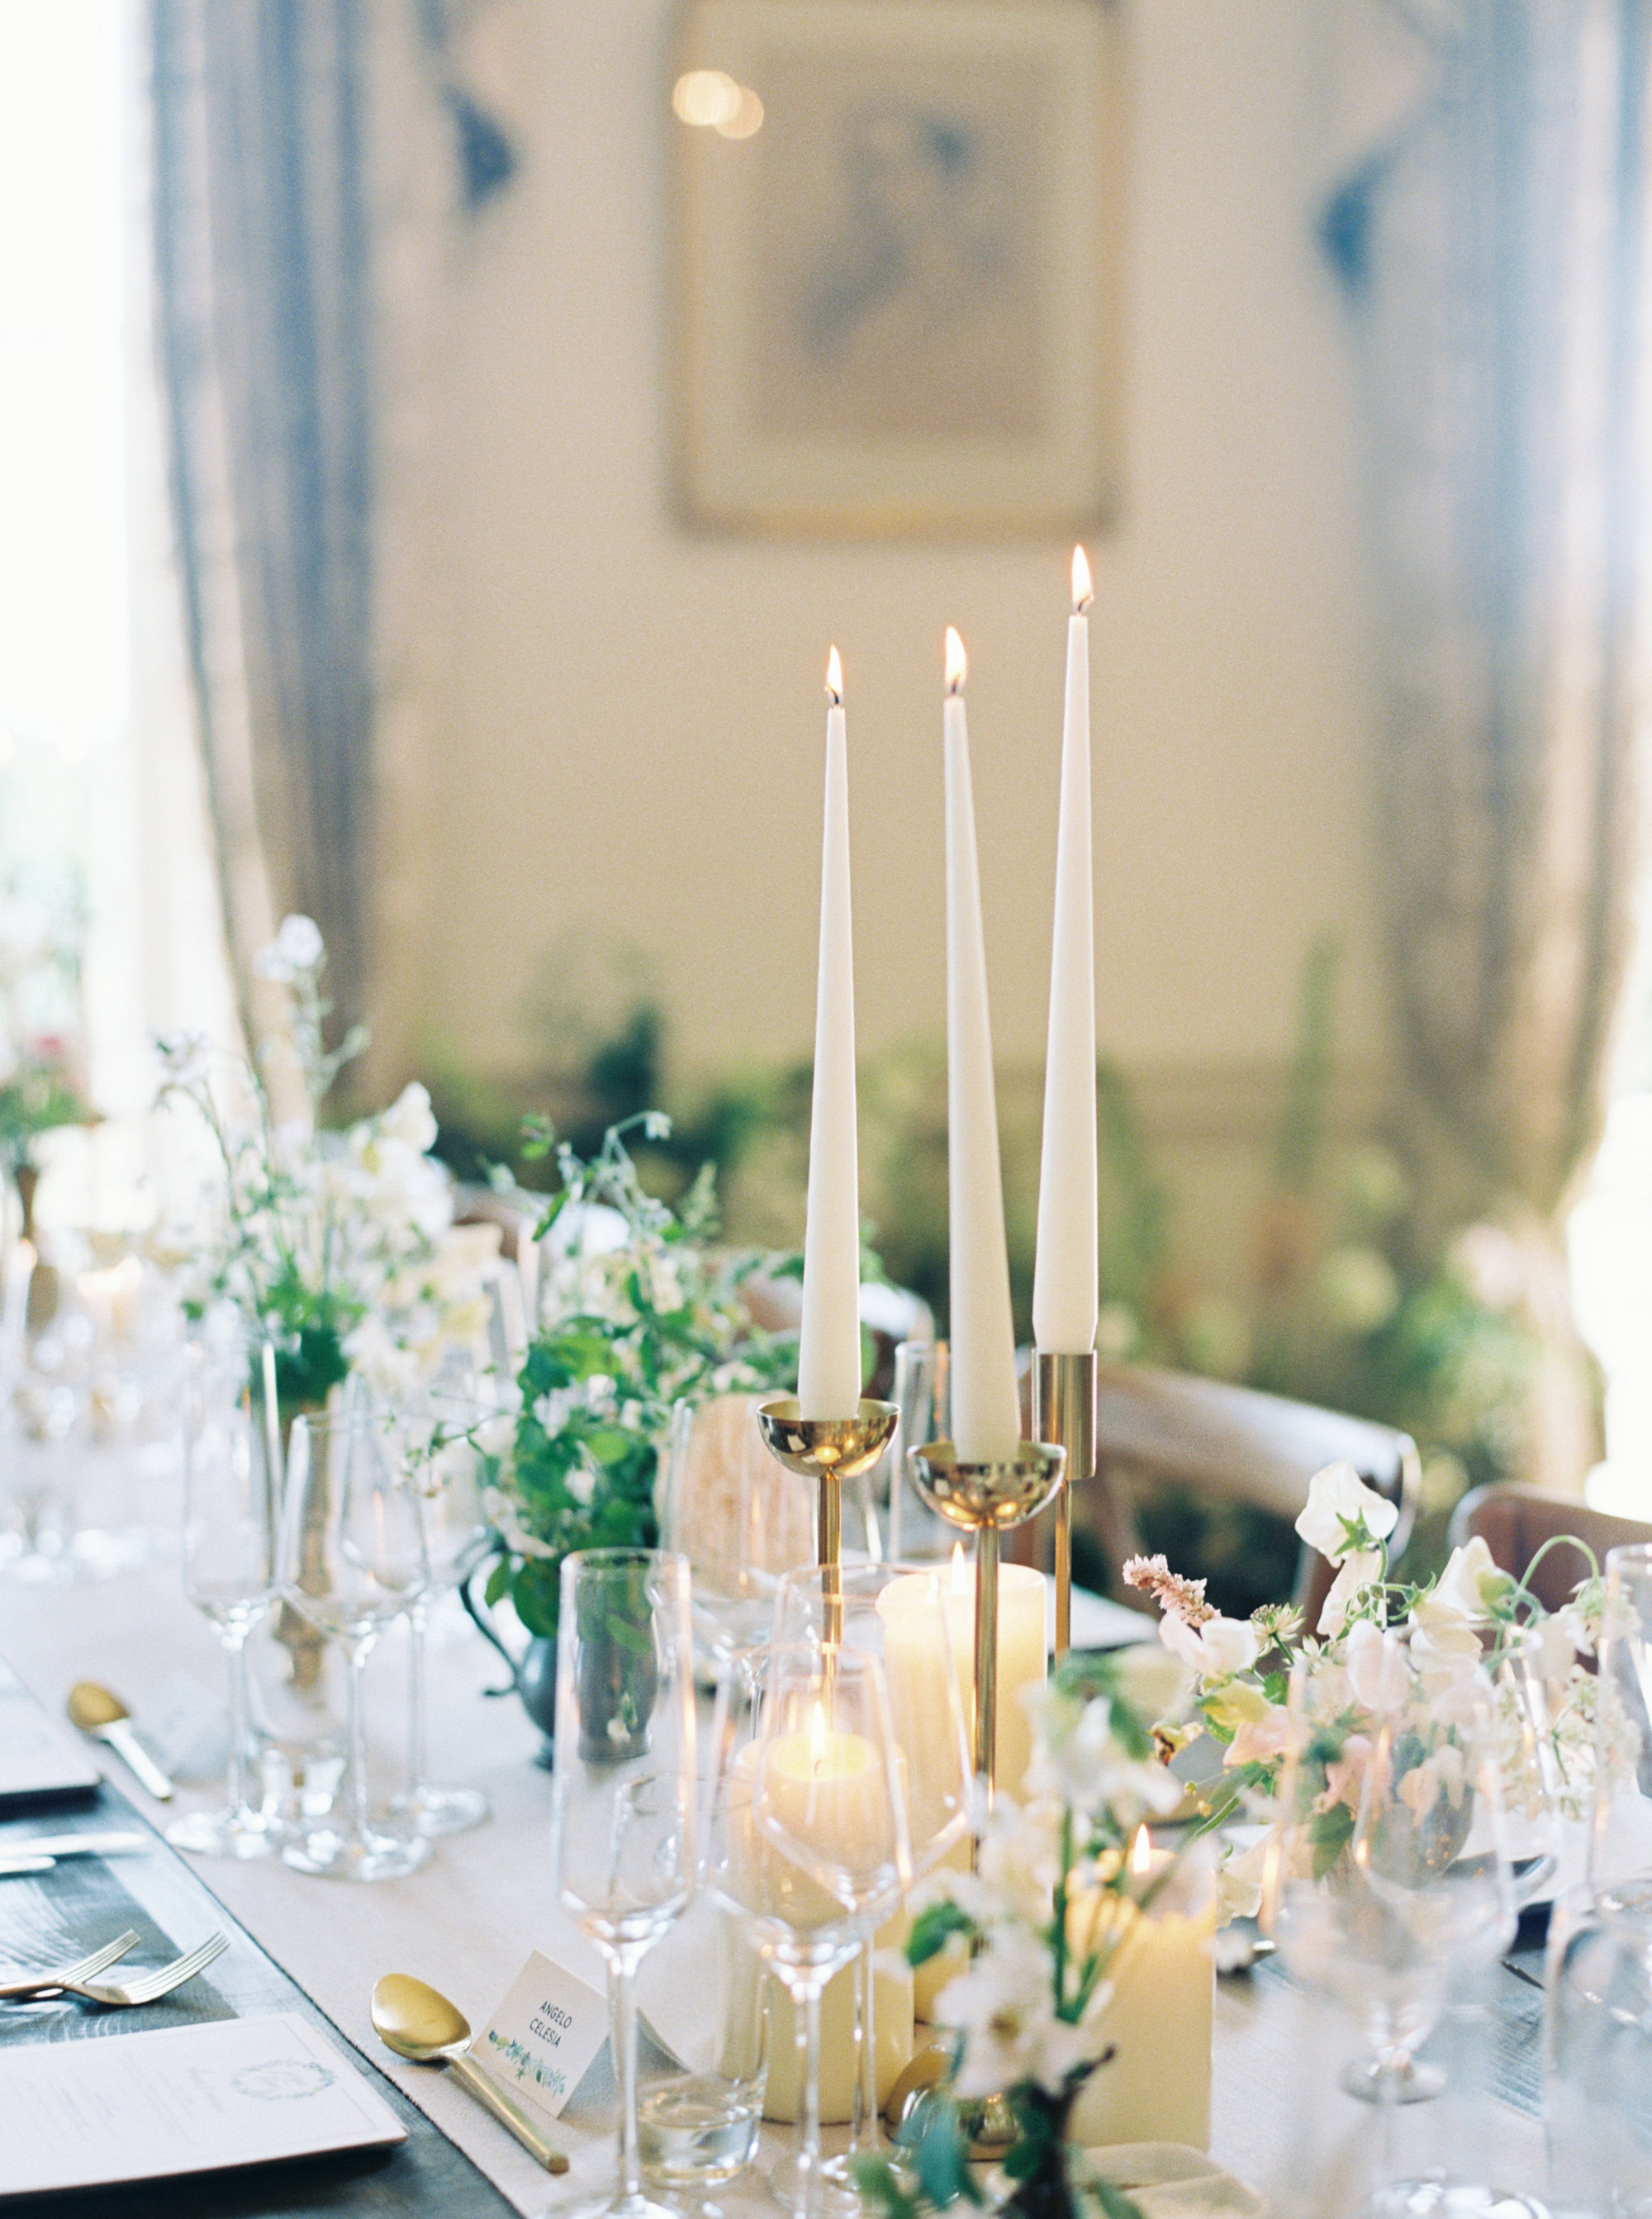 Luxury Wedding Planner UK | Jennifer & Timothy's English Country Manor Wedding | Soft Pink Pale Blue White and Silver Toned Green Neutral Tones American Bride North Cadbury Court | Nicole Colwell Photography 1199.jpg